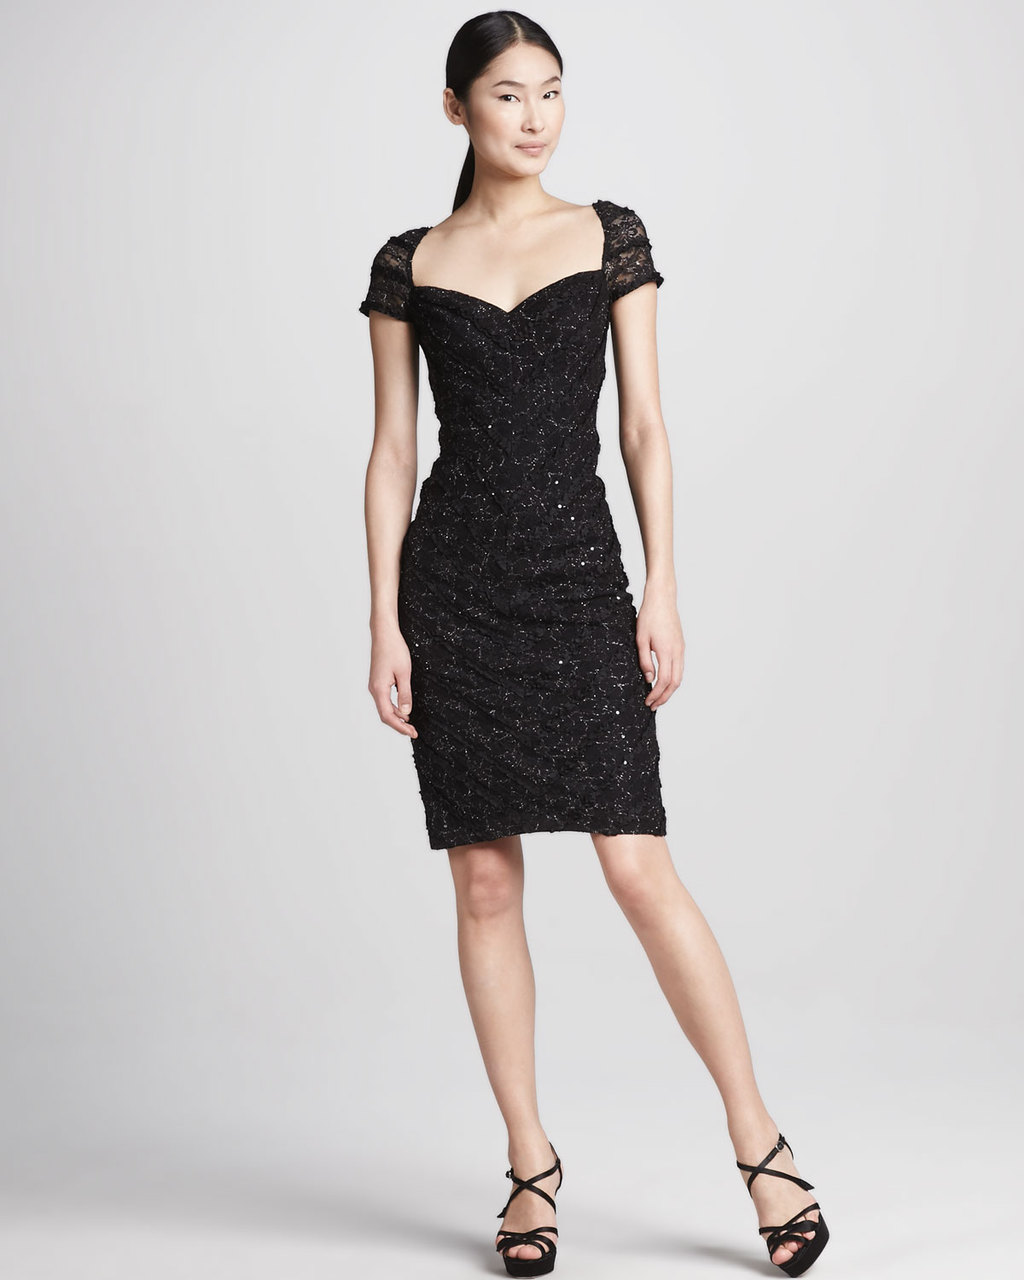 Black beaded LBD for mothers of the bride